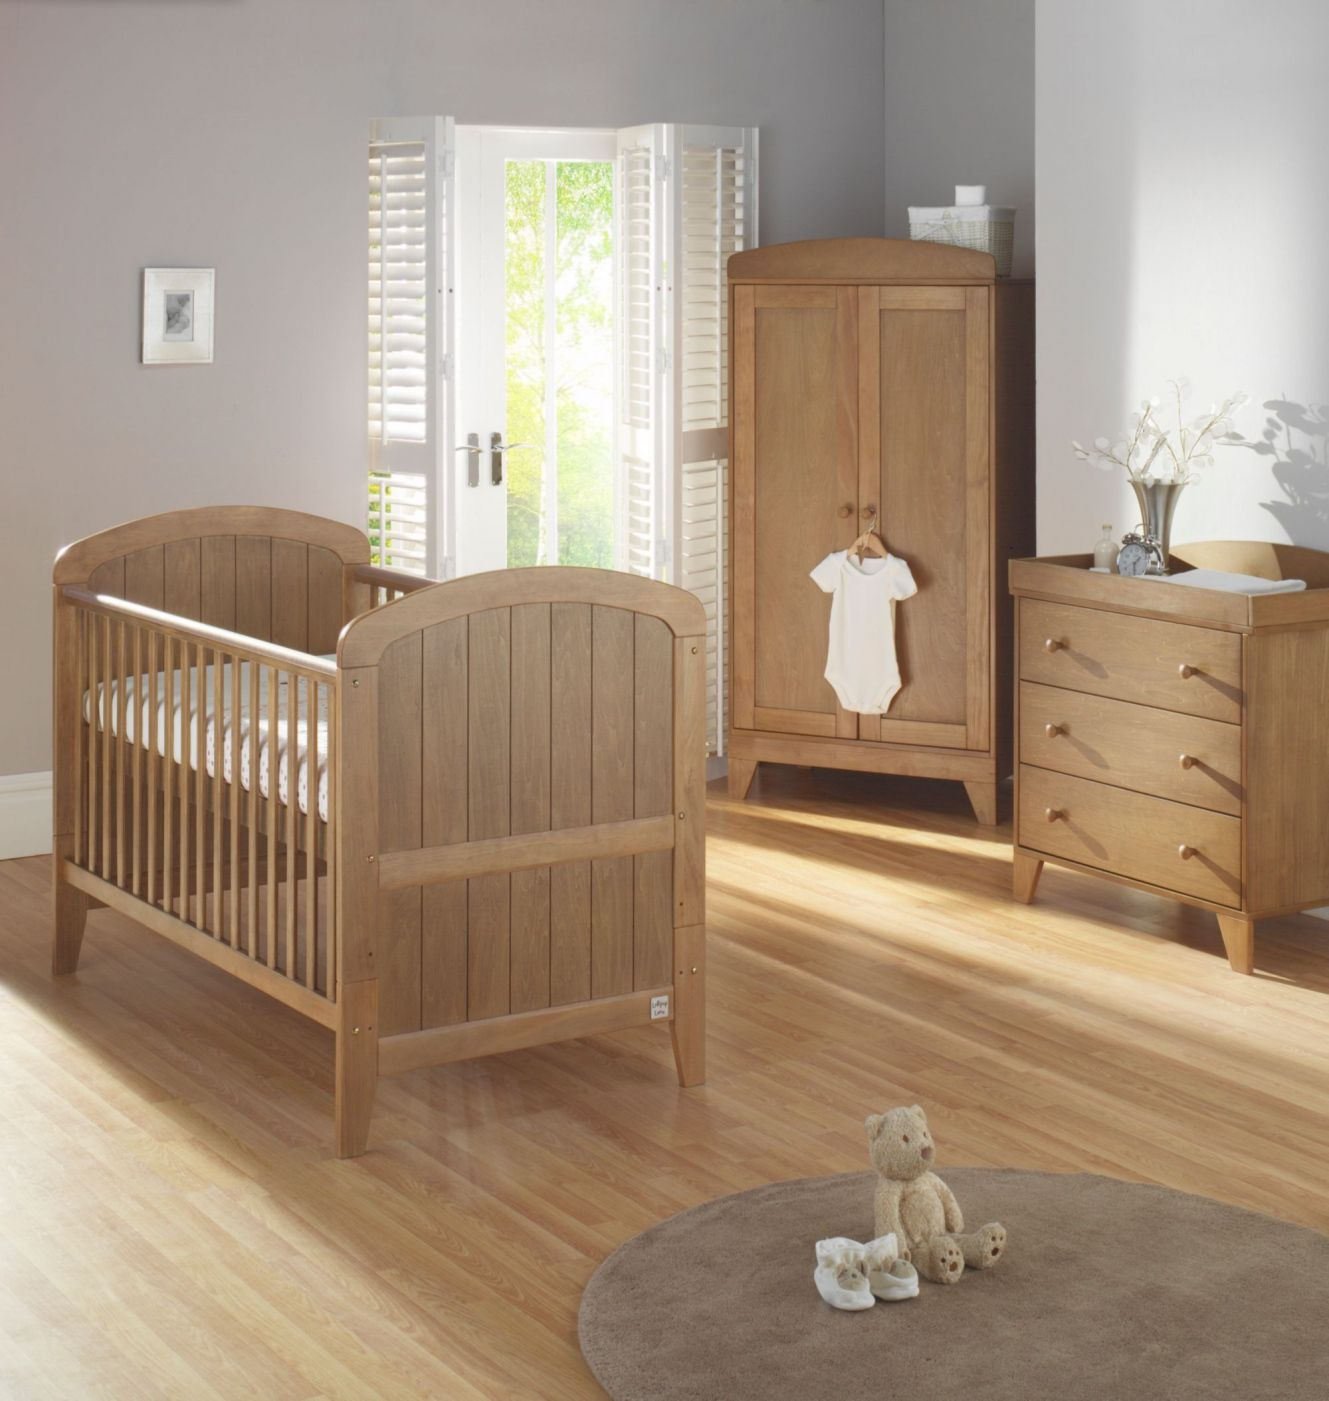 30 Oak Baby Furniture Interior Design Ideas Bedroom Check More